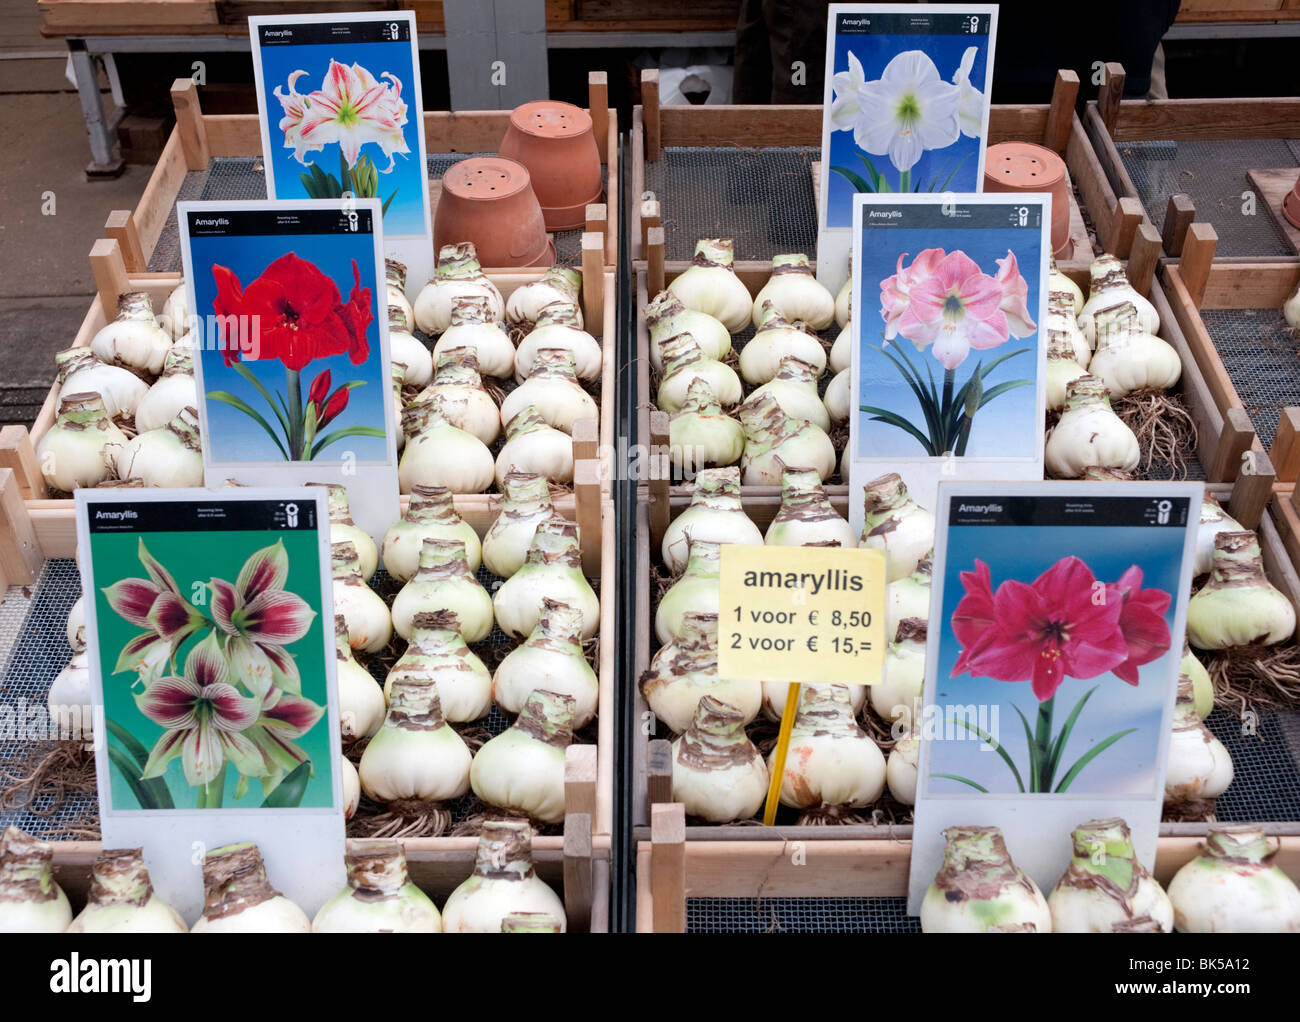 Flower bulbs for sale in flower market in central Amsterdam in Netherlands Stock Photo